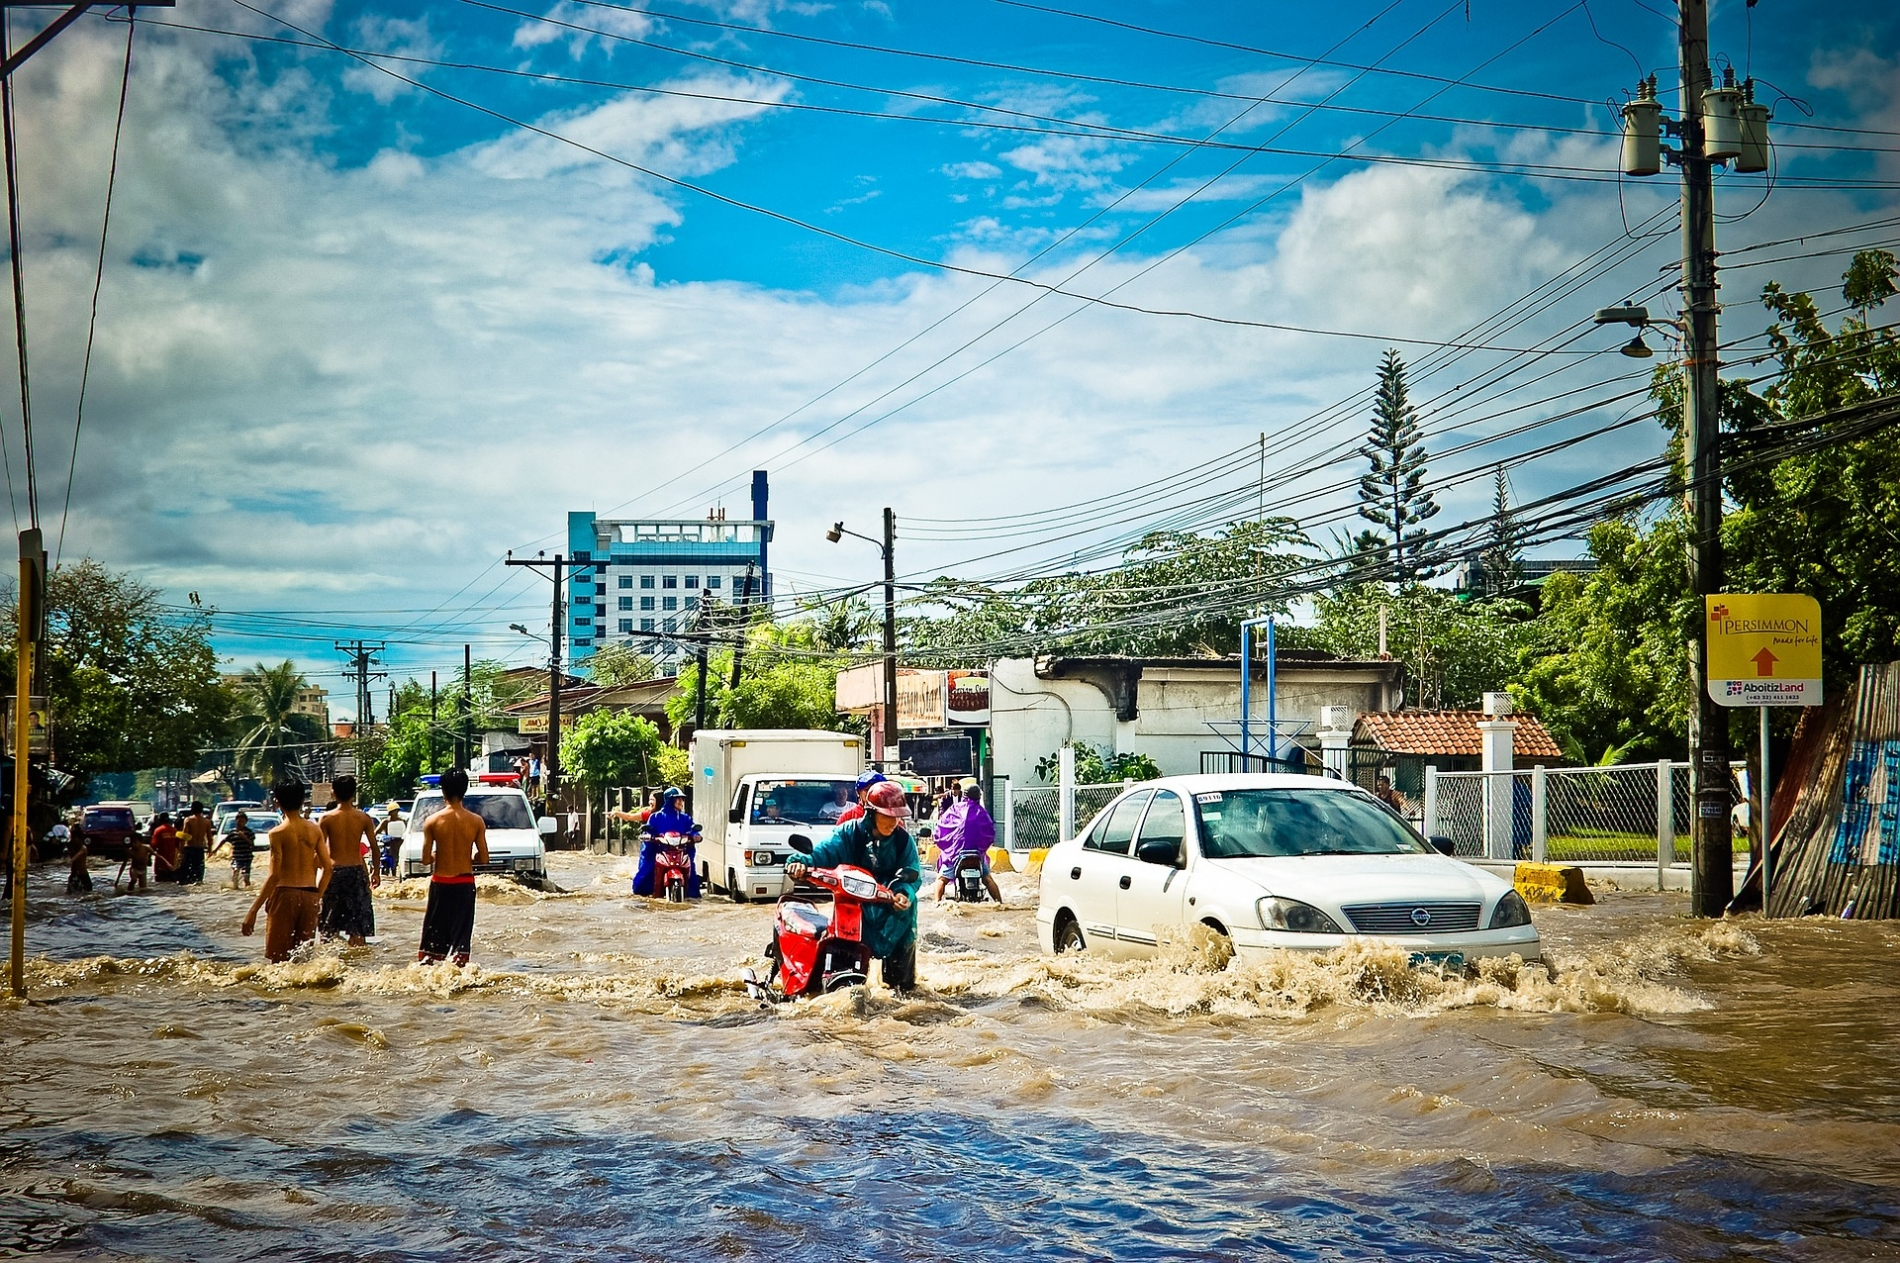 People and cars in a flooded street.